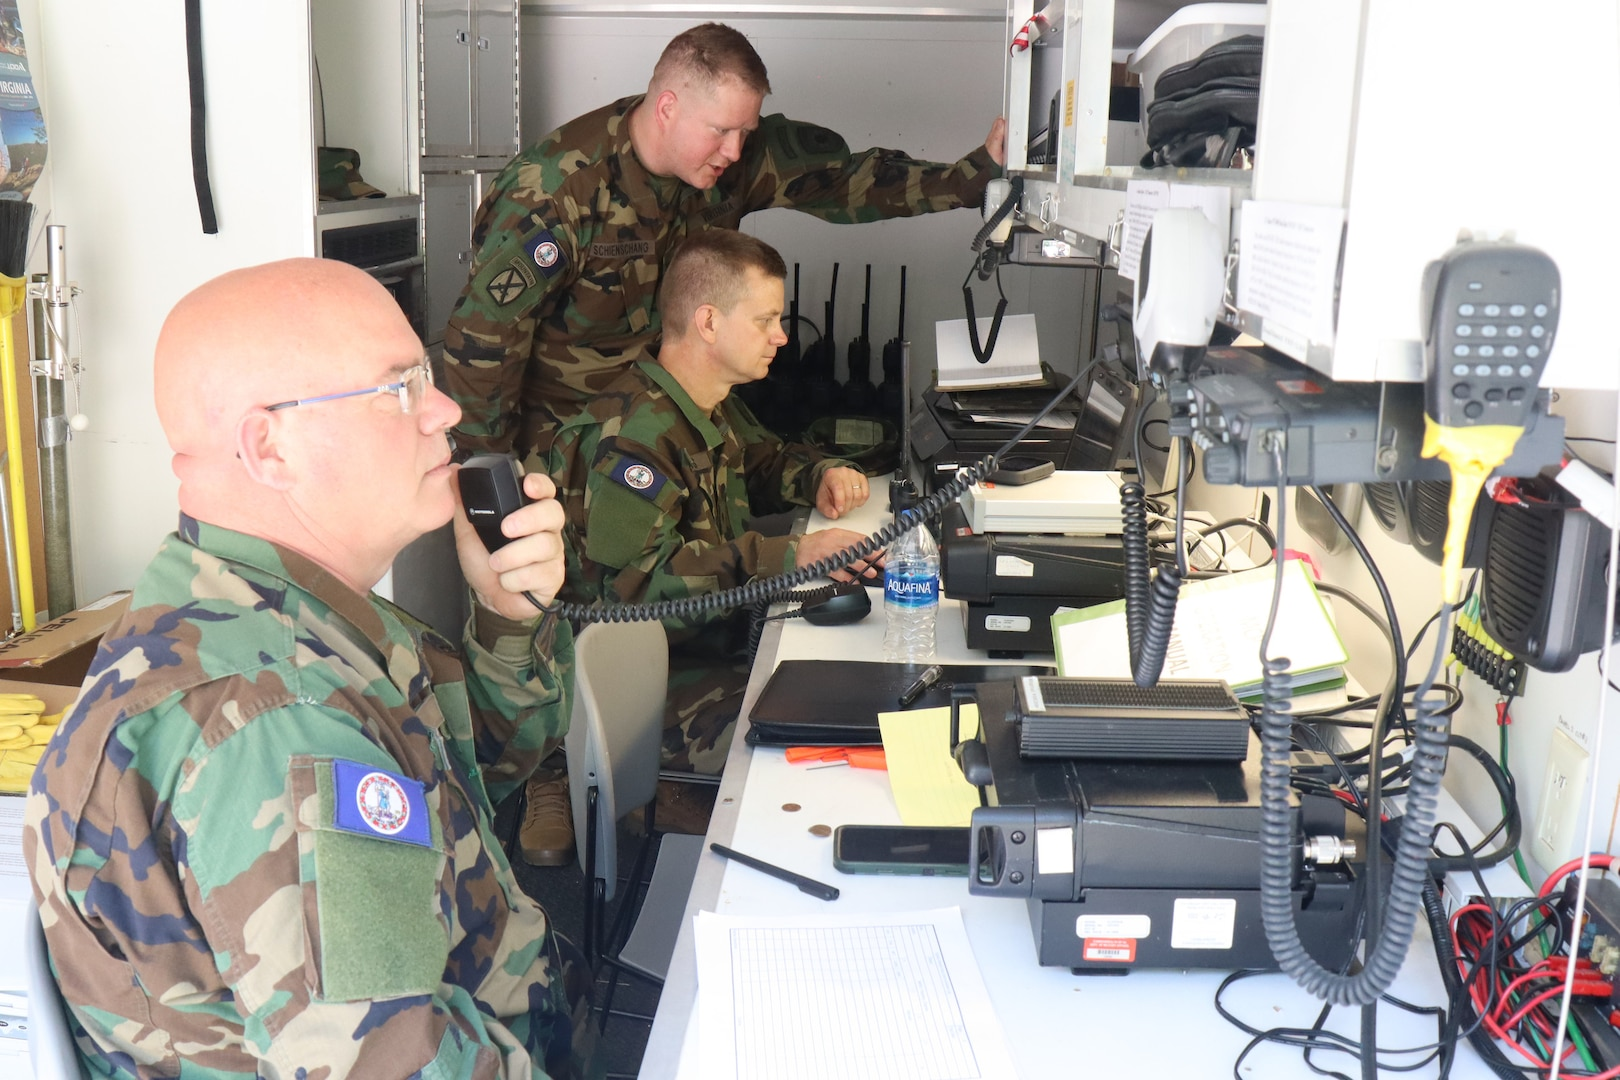 Virginia Defense Force personnel assigned to the Communication Battalion, Support Operations Group relay message traffic in a Mobile Communication Platform June 5, 2021, in Lynchburg, Virginia.